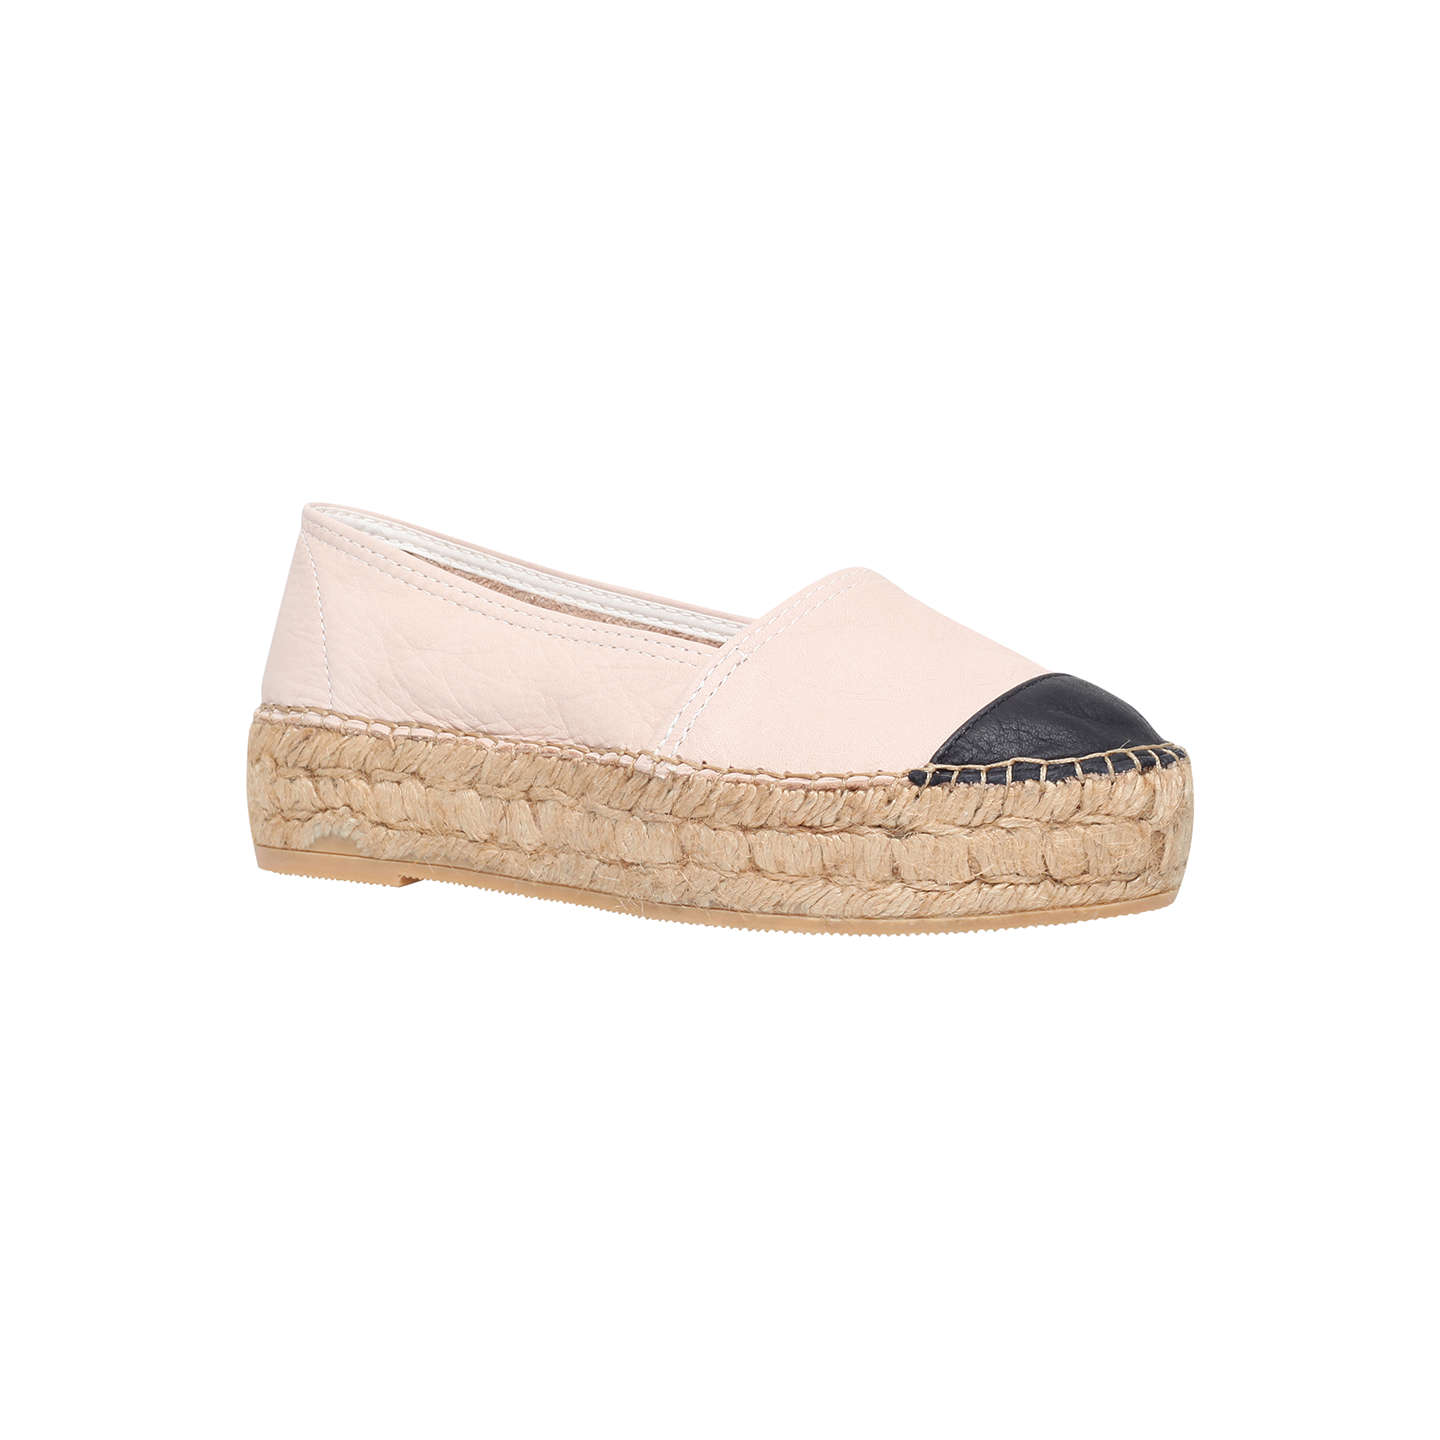 Mellow Nude Flat Slip On Shoes By KG Kurt Geiger 1b3poDQO